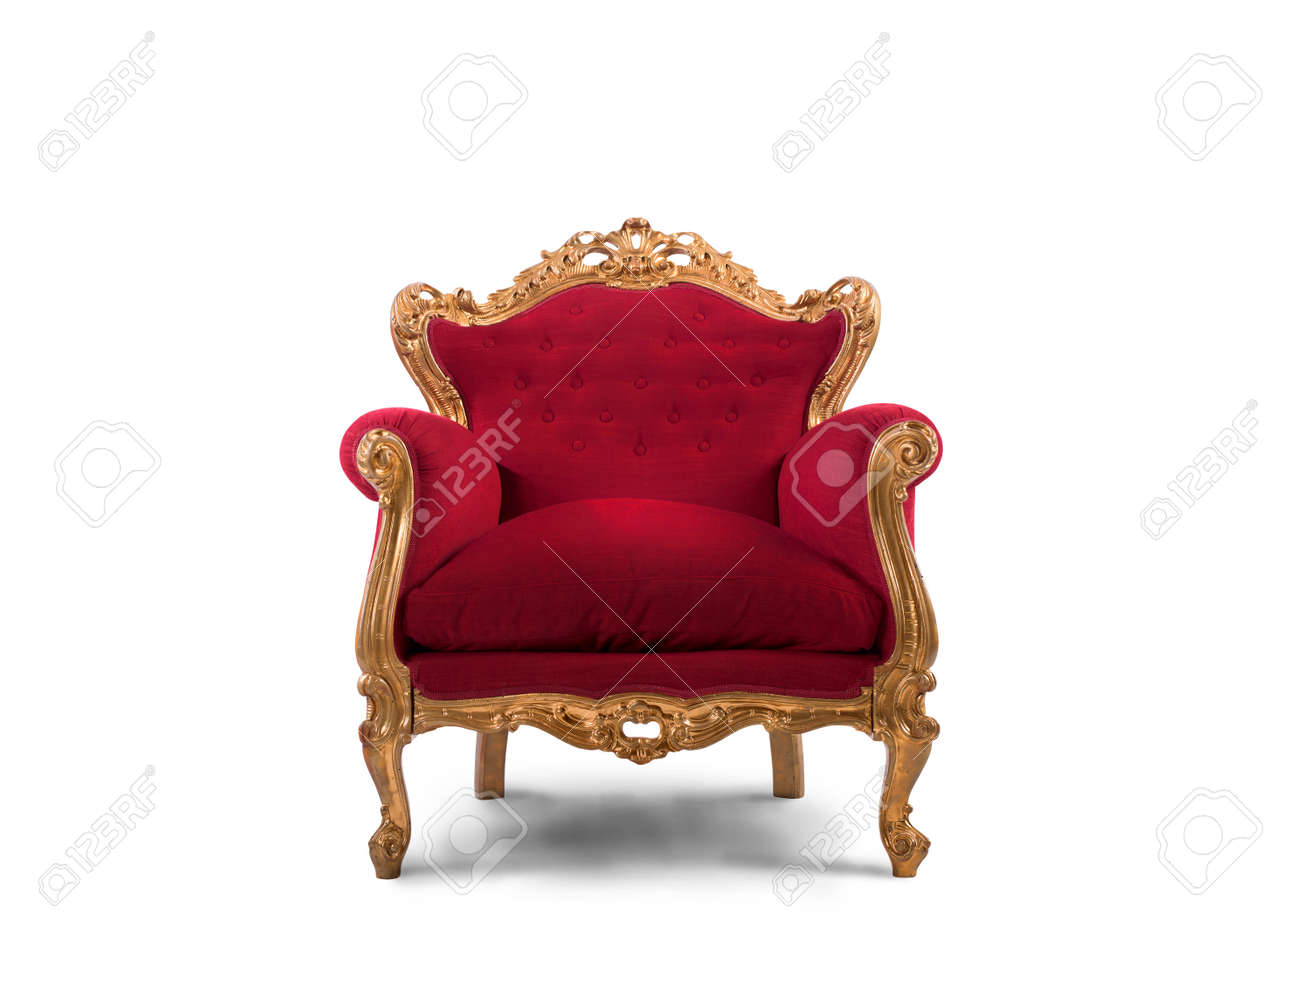 Concept of luxury and success with red velvet and gold armchair Stock Photo - 46037496